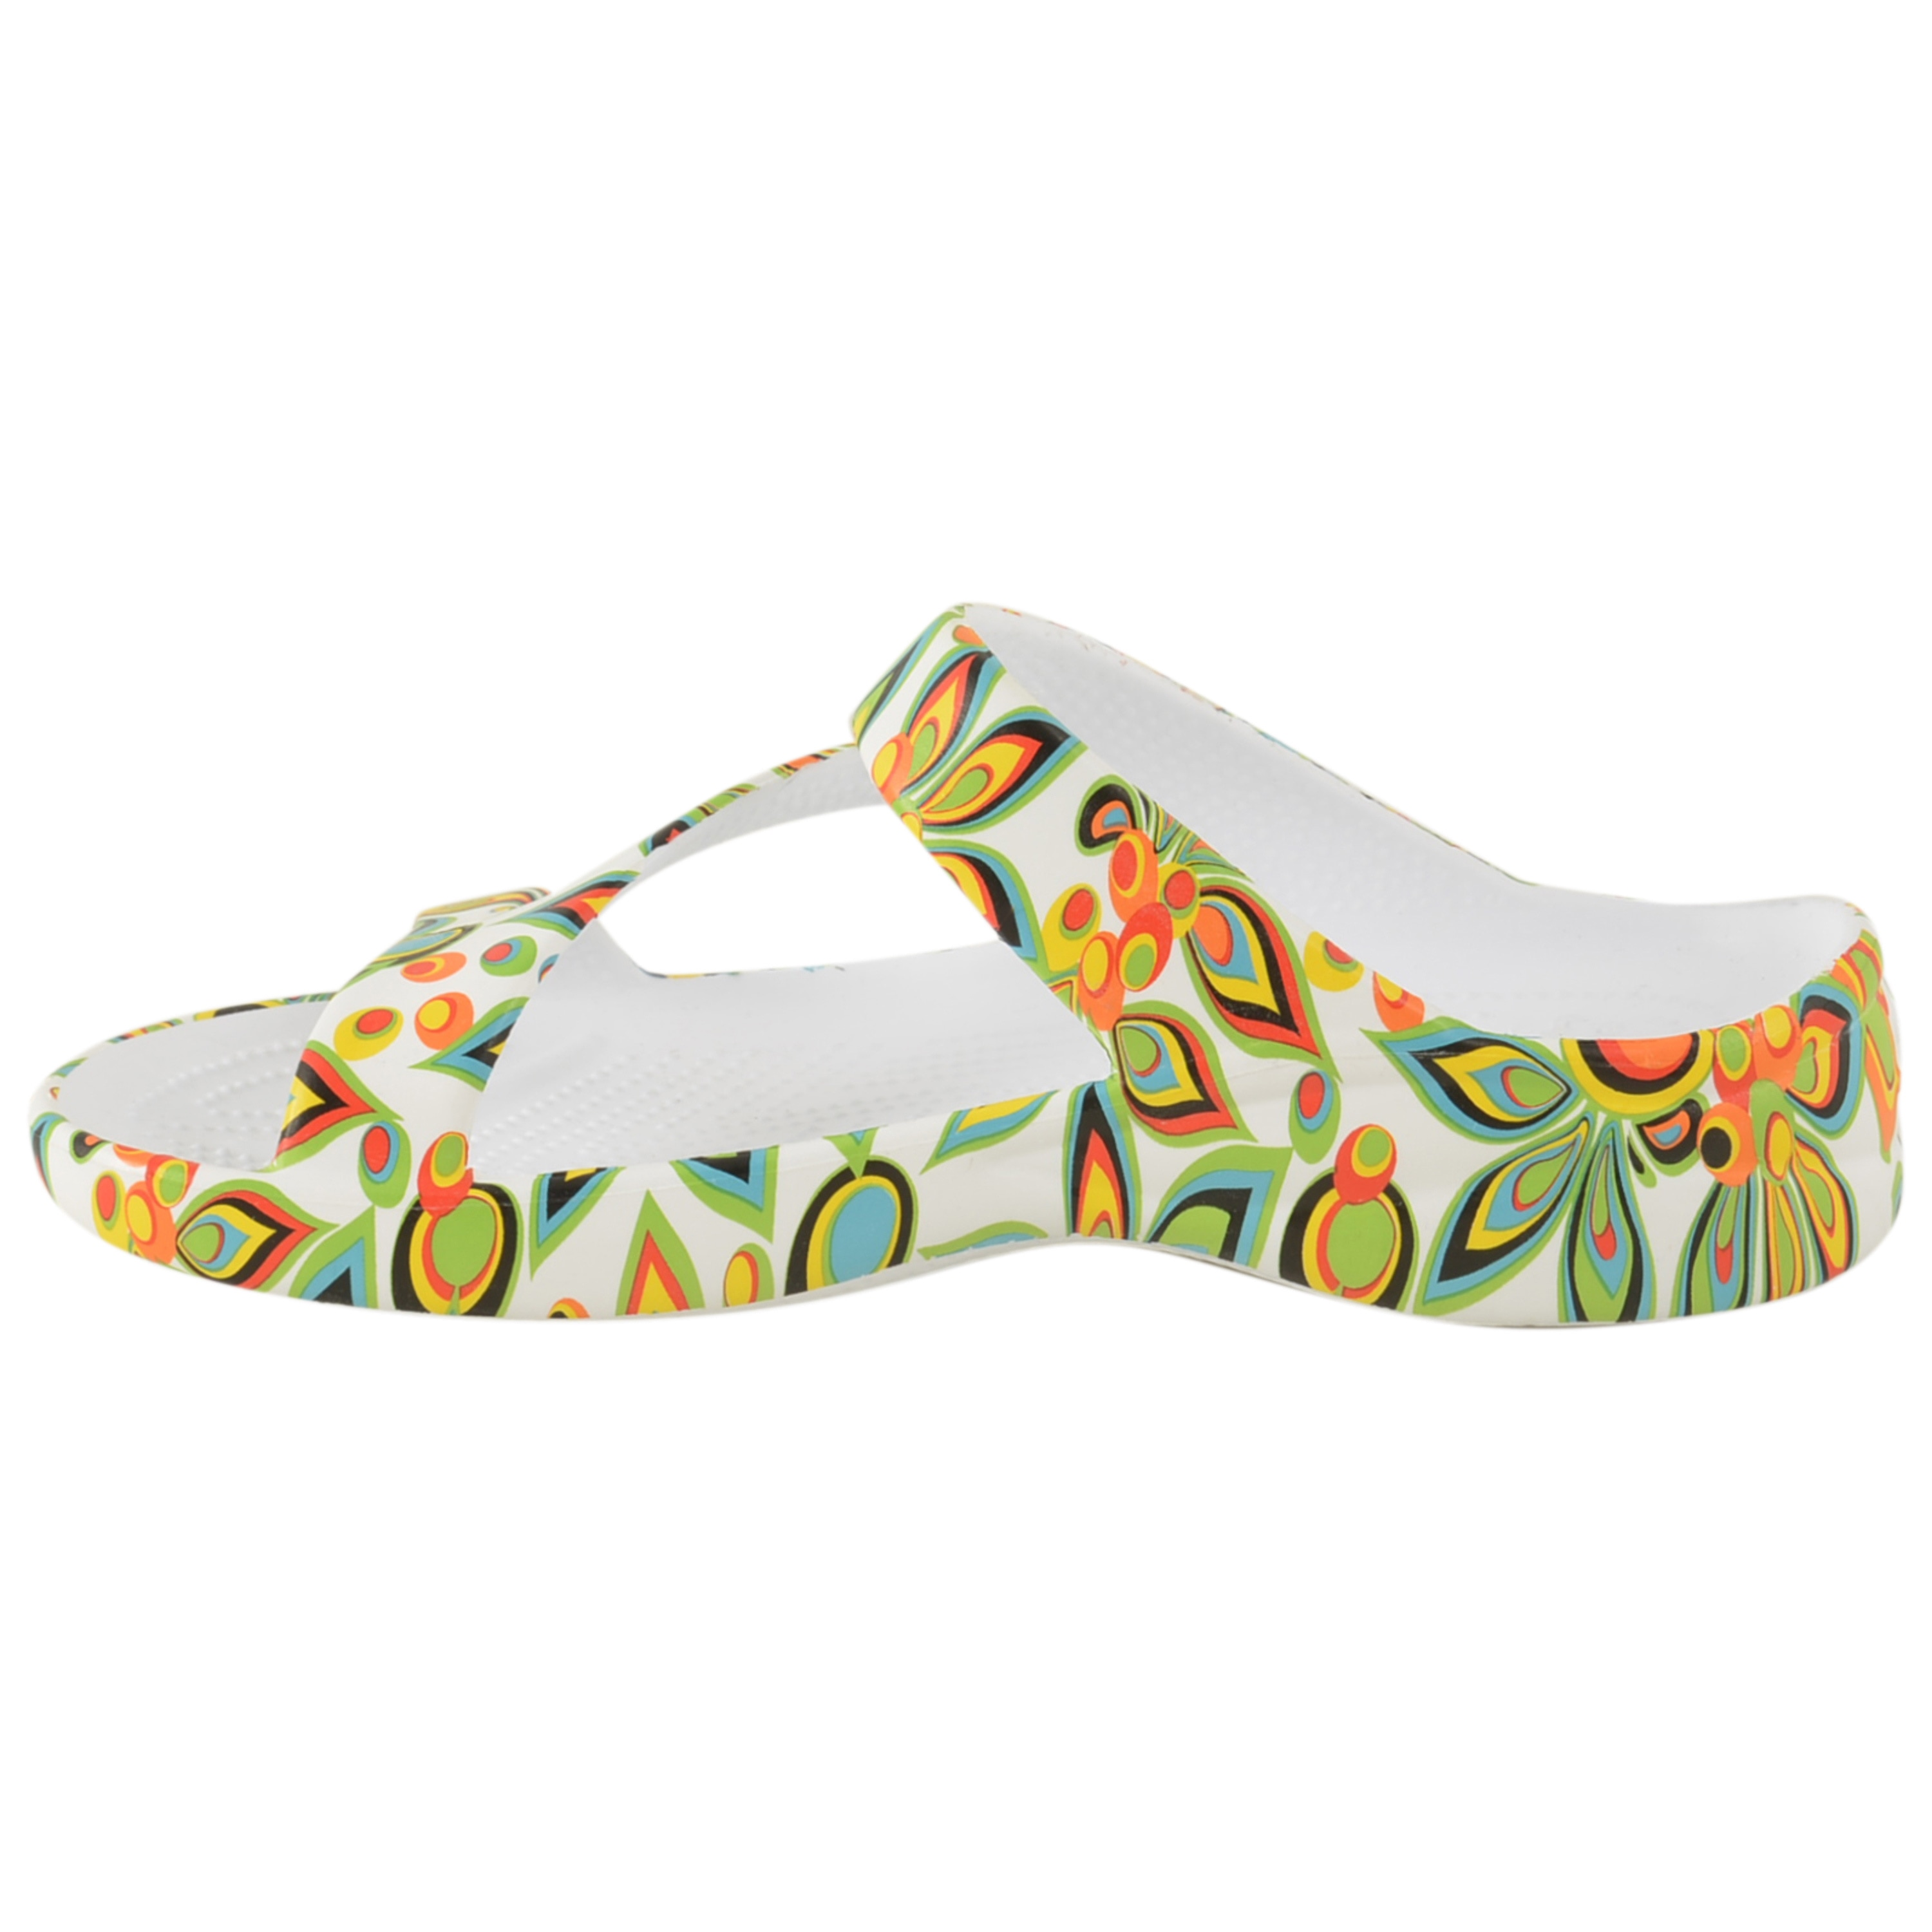 3bb7a25e241 Shop Women s Dawgs Loudmouth Z Sandal Shagadelic White - Free Shipping On  Orders Over  45 - Overstock - 9112627